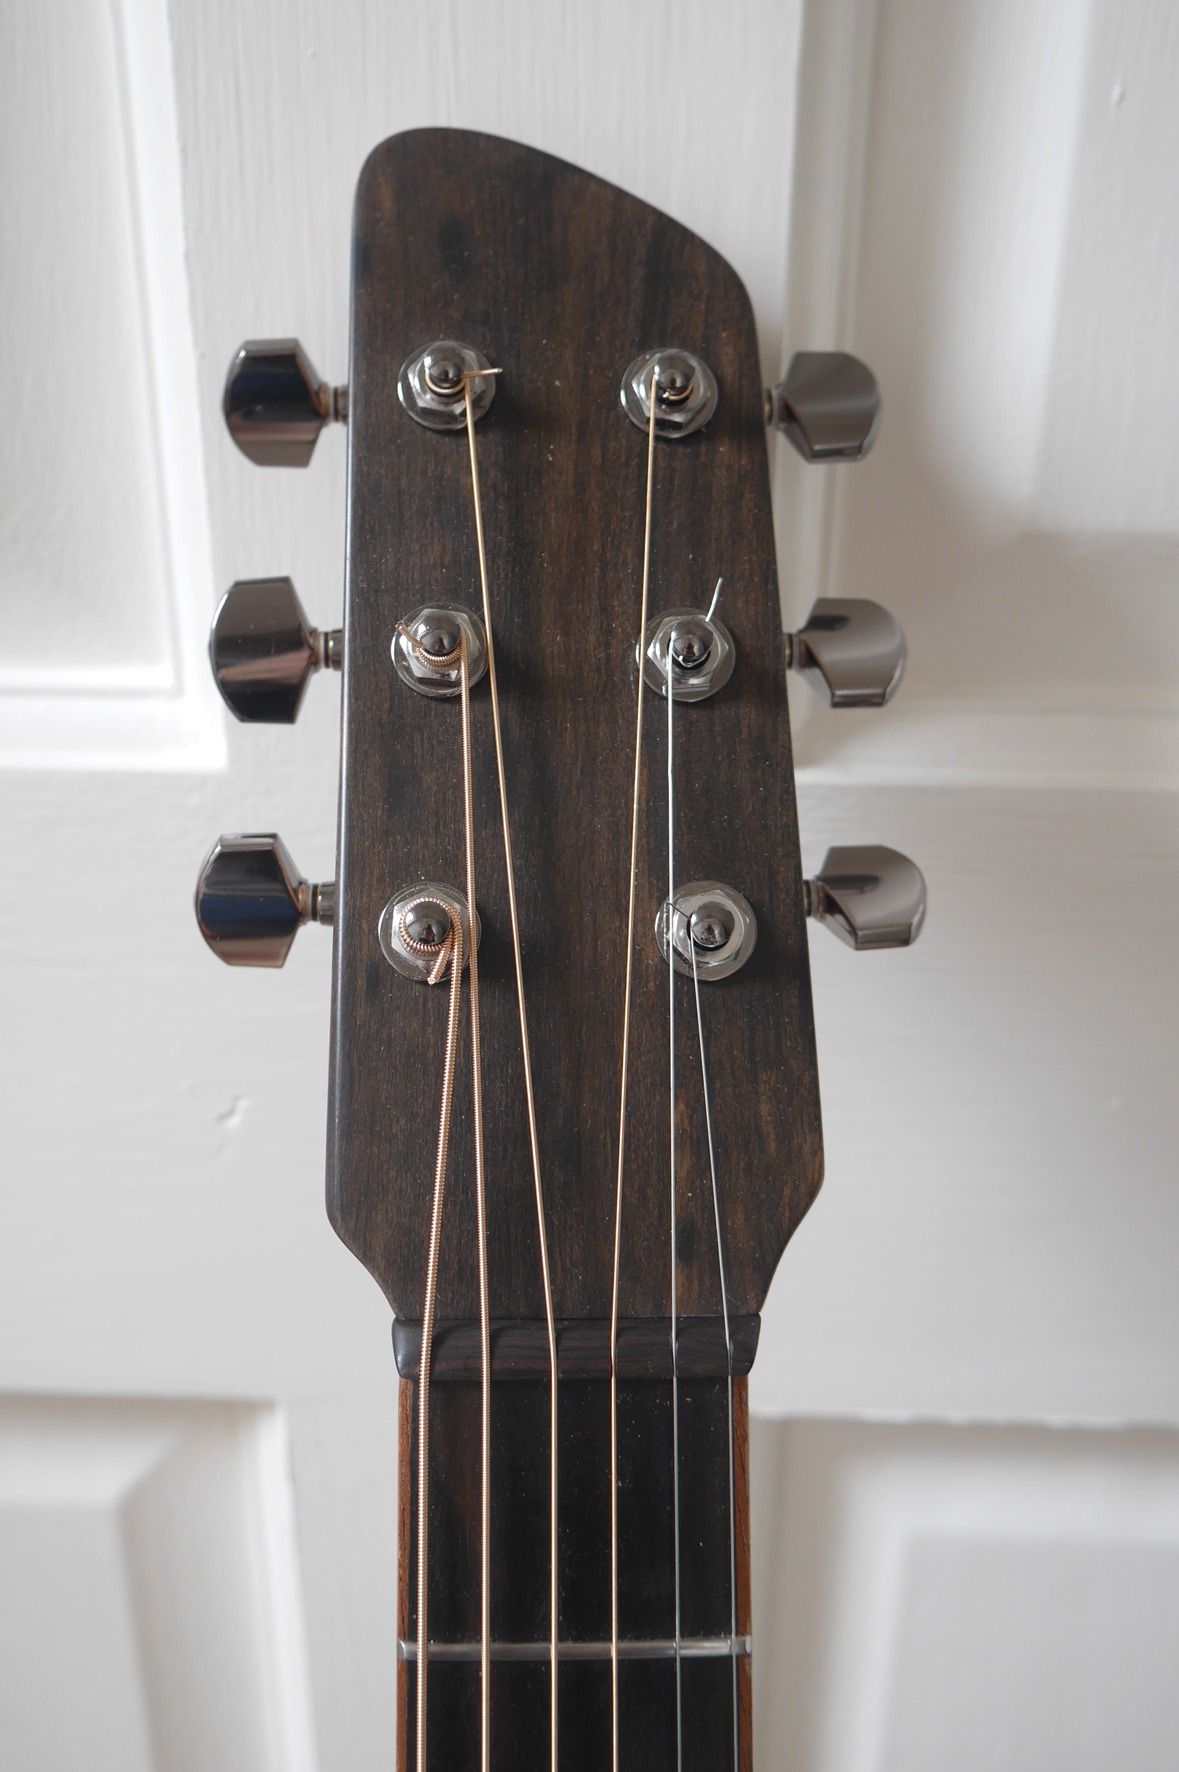 andreas montgomery, headstock, montgomery guitars, luthier